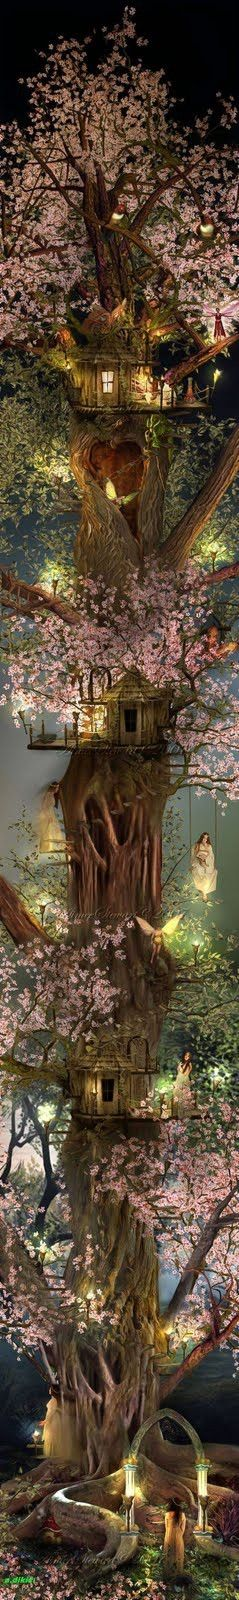 magical . . .: Fairies, Fairy House, Tree Houses, Fairy Tree, Treehouse, Fairy Garden, Faerie, Fairytale